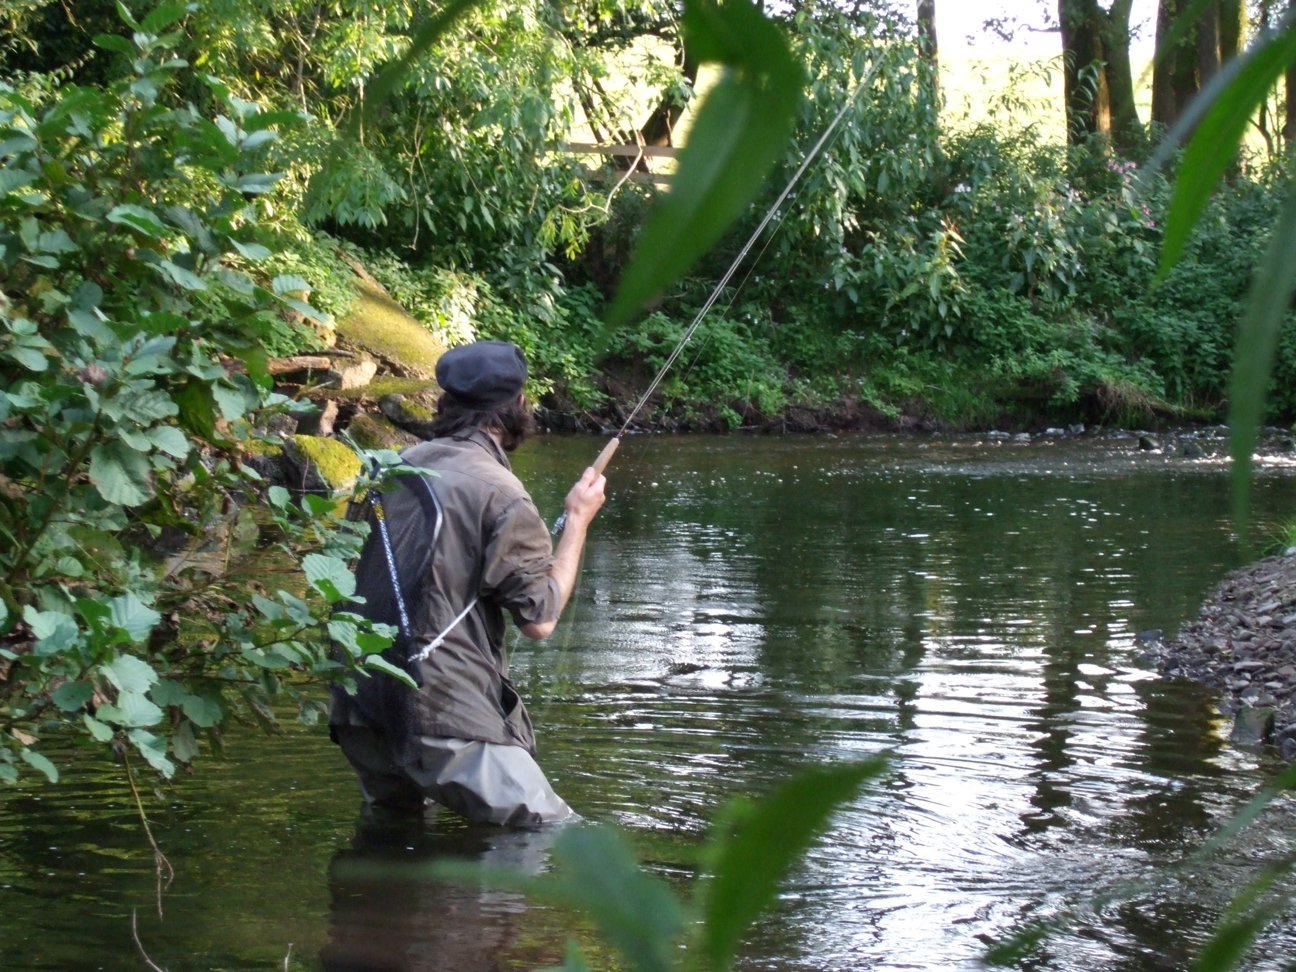 Trout fishing on the Llynfi Dulas, one of the streams to benefit from habitat restoration in pHish